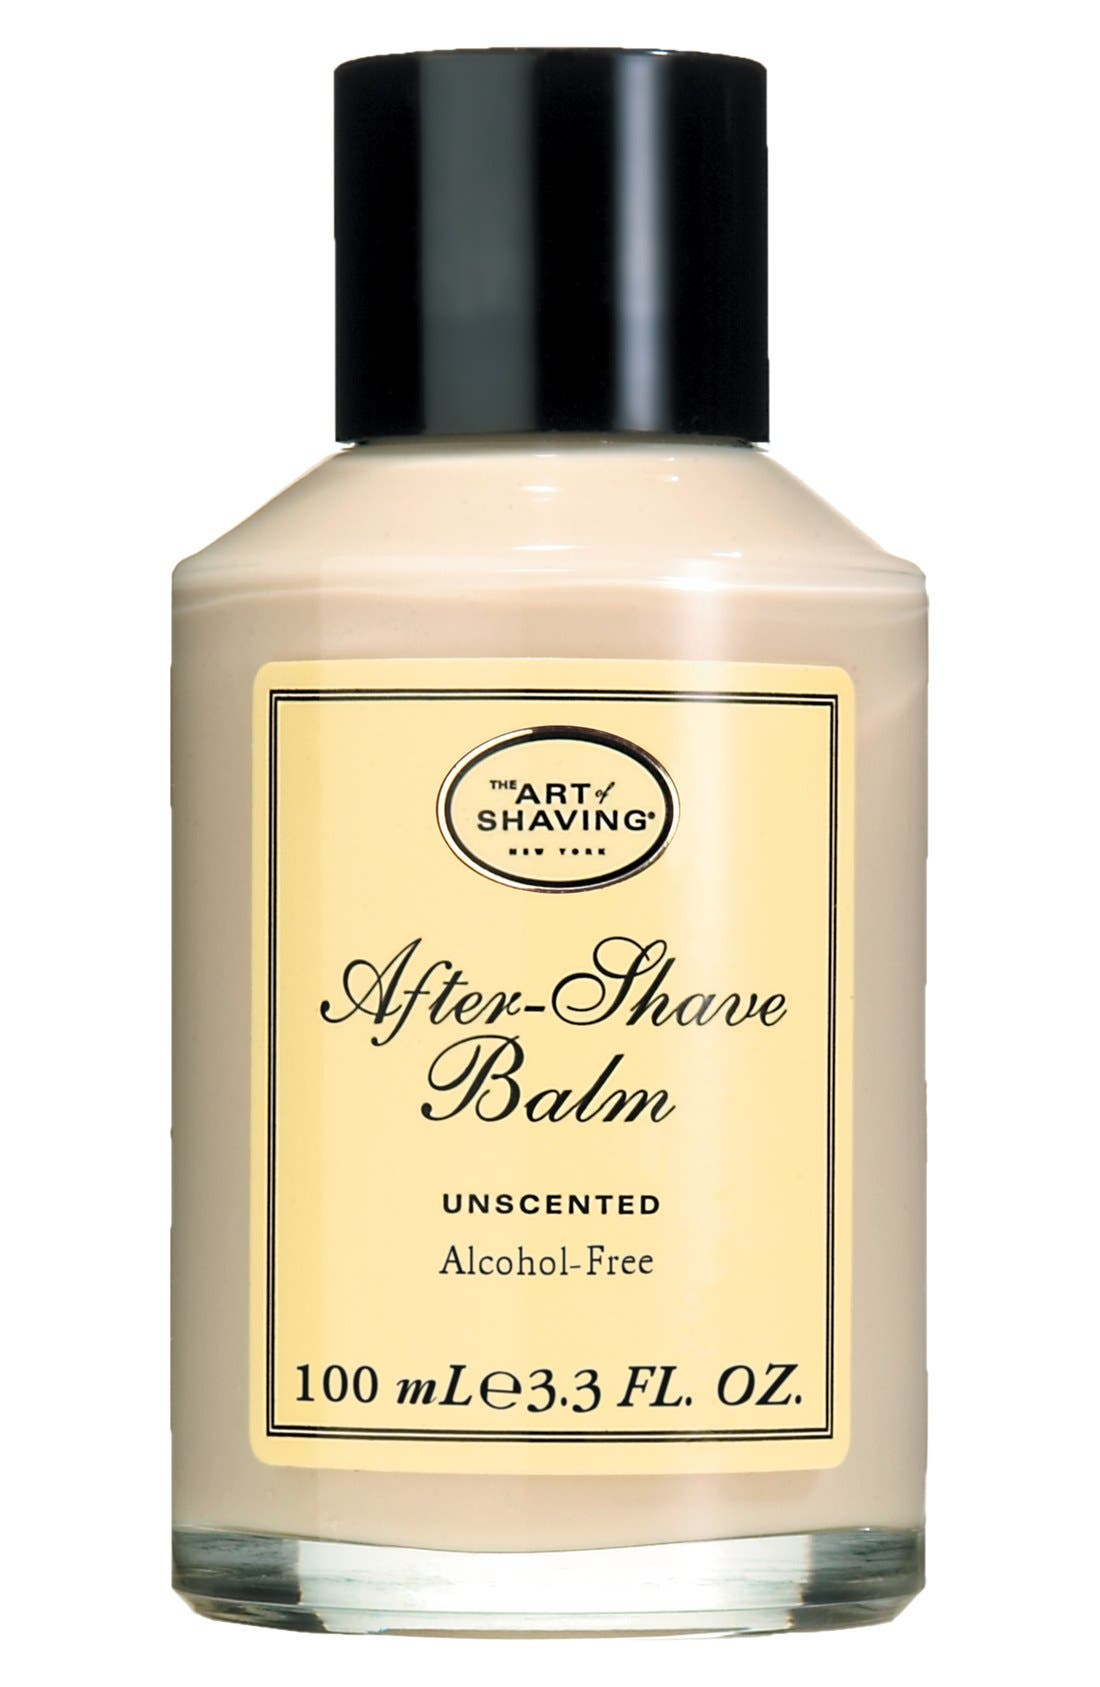 The Art of Shaving® Unscented After-Shave Balm